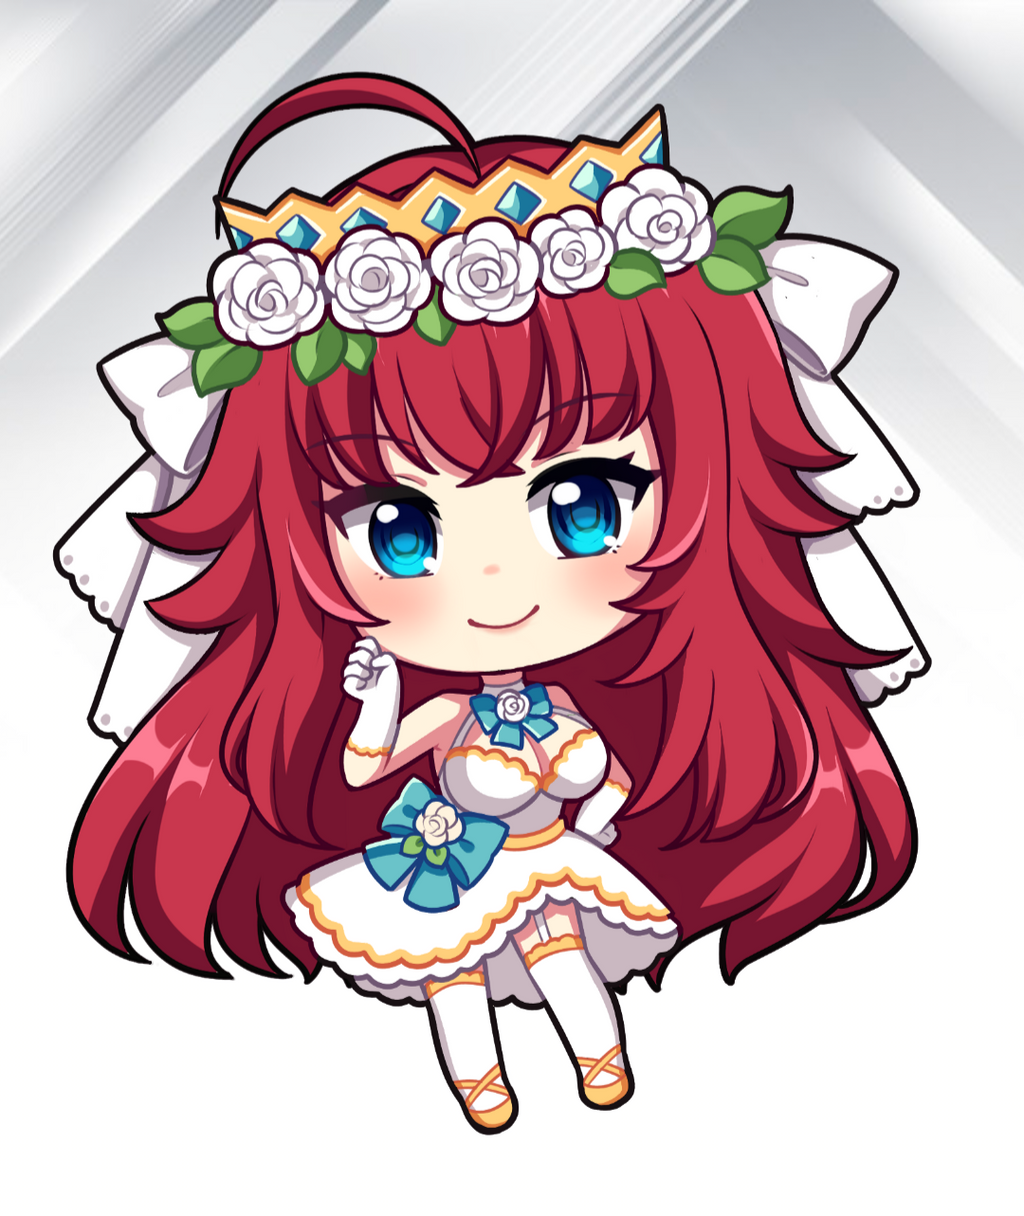 Rias - Wedding Chibi - Decal